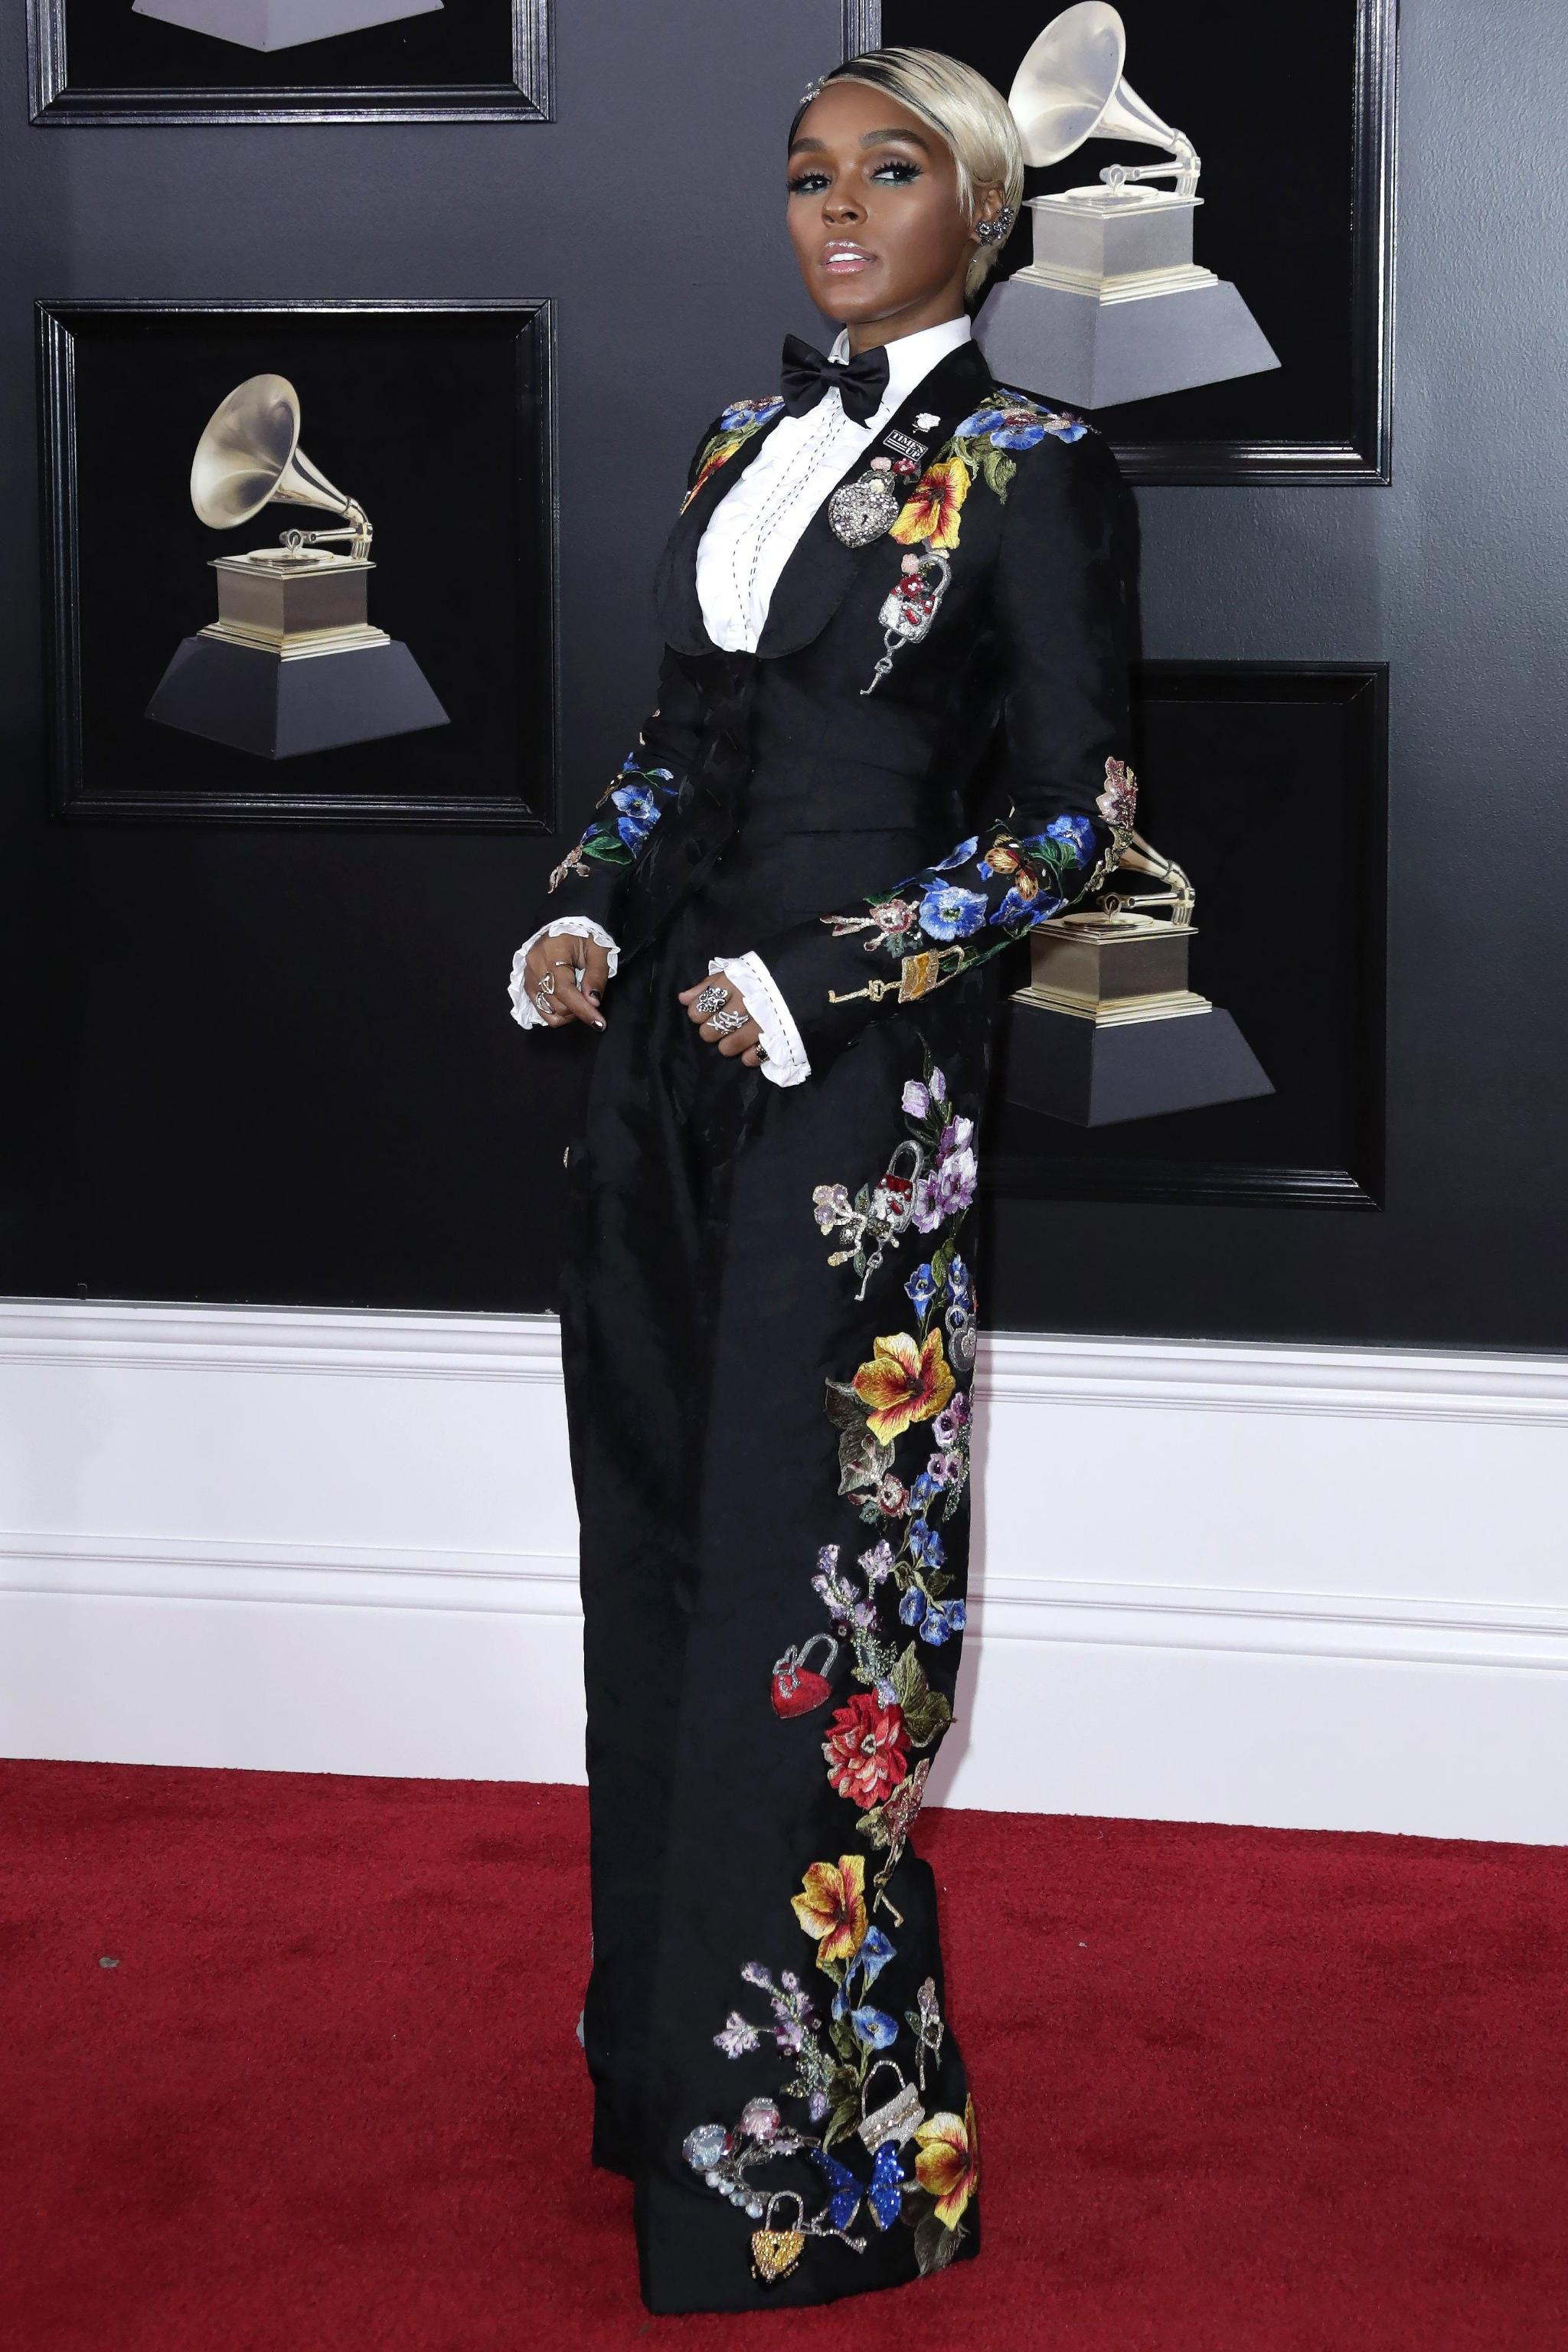 Janelle Monae in Dolce & Gabbana Grammy Awards 2018